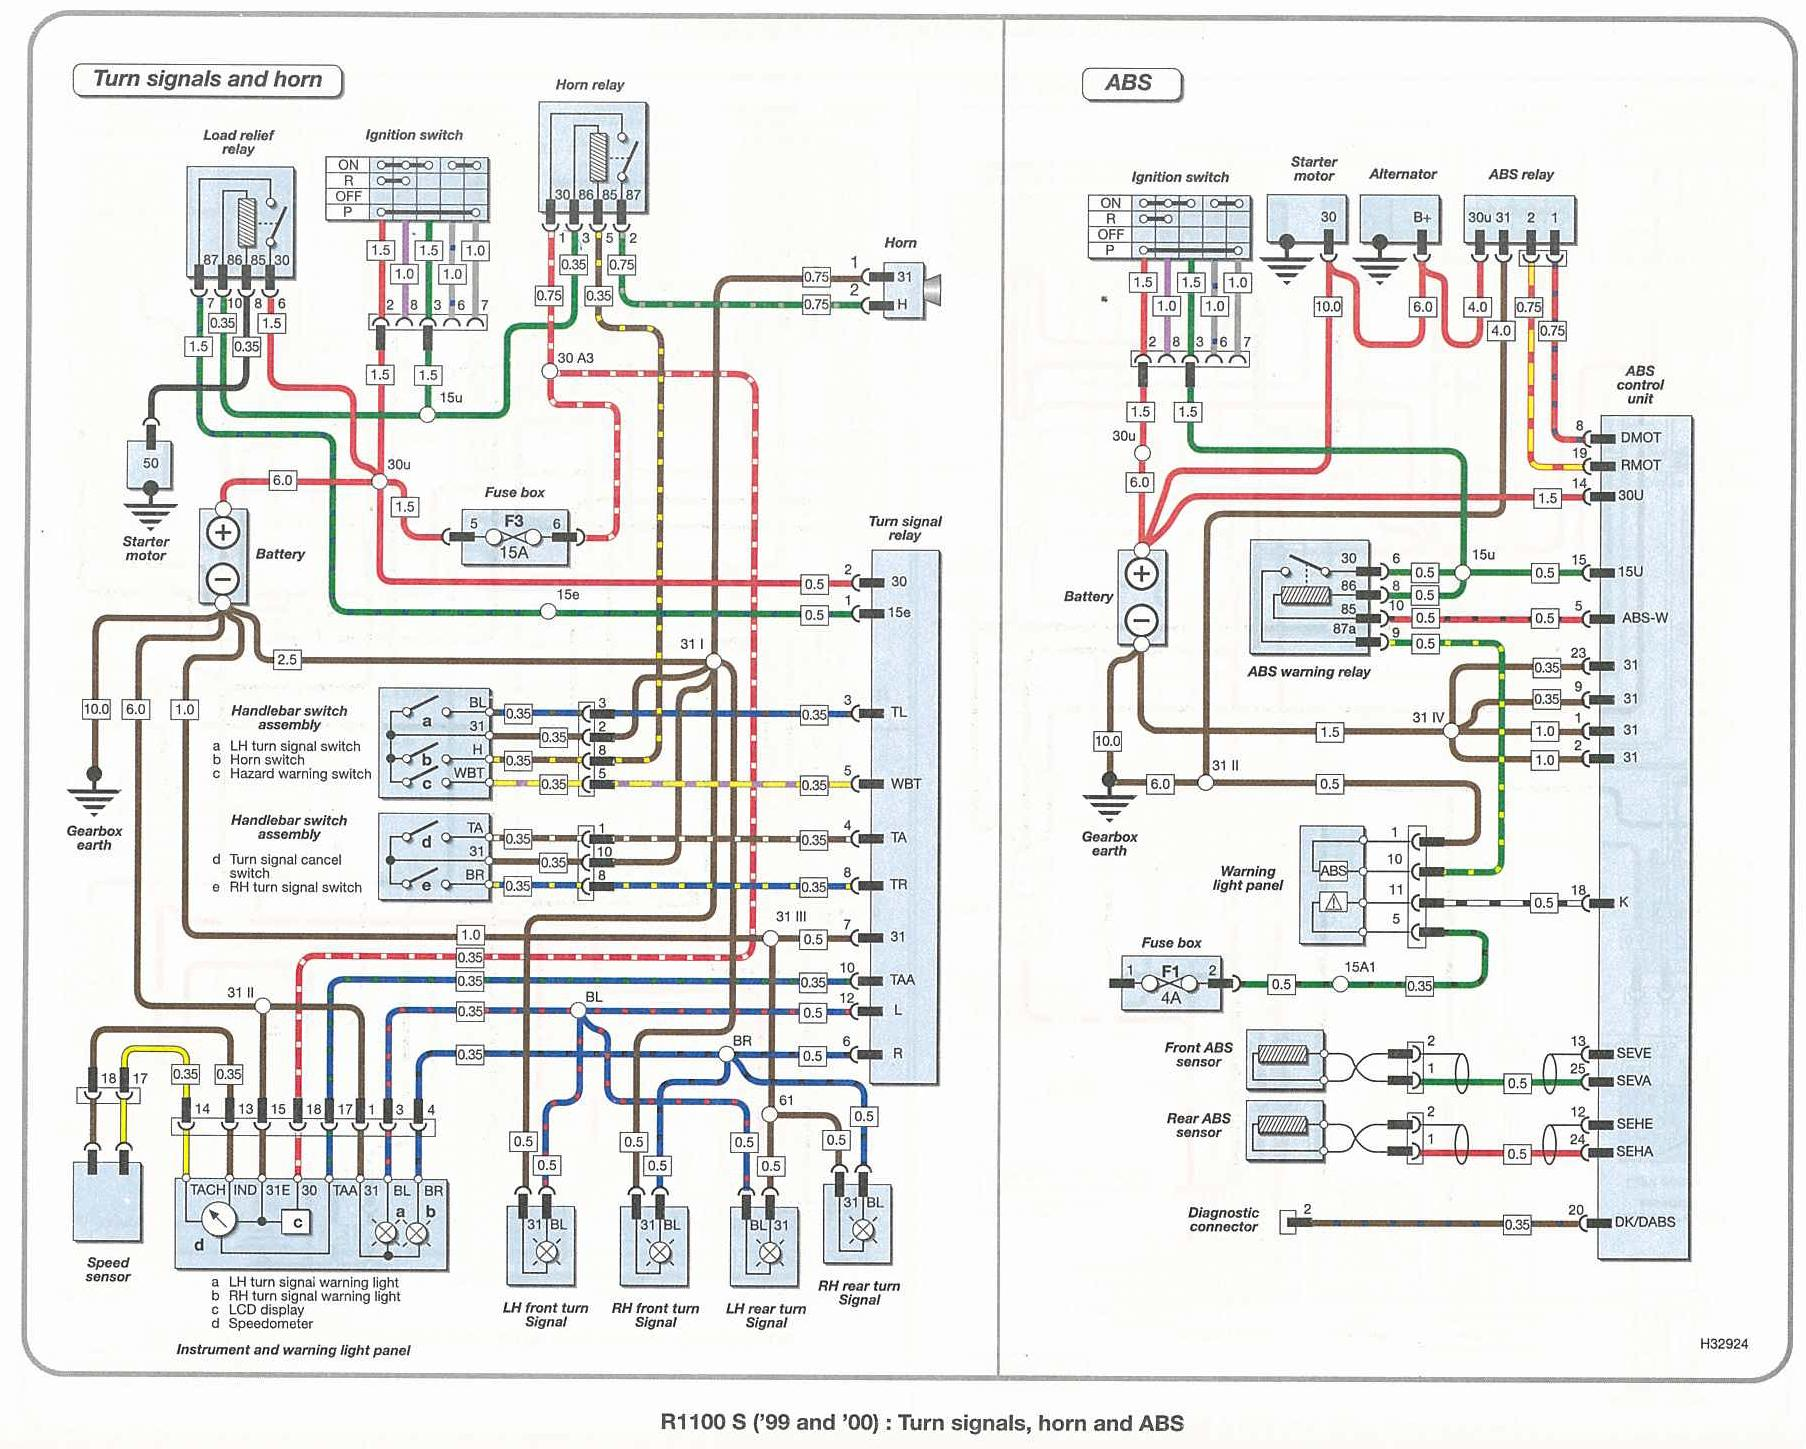 wiring03 bmw wiring diagram bmw wiring diagrams e39 \u2022 wiring diagrams j E46 Wiring Diagram PDF at mr168.co